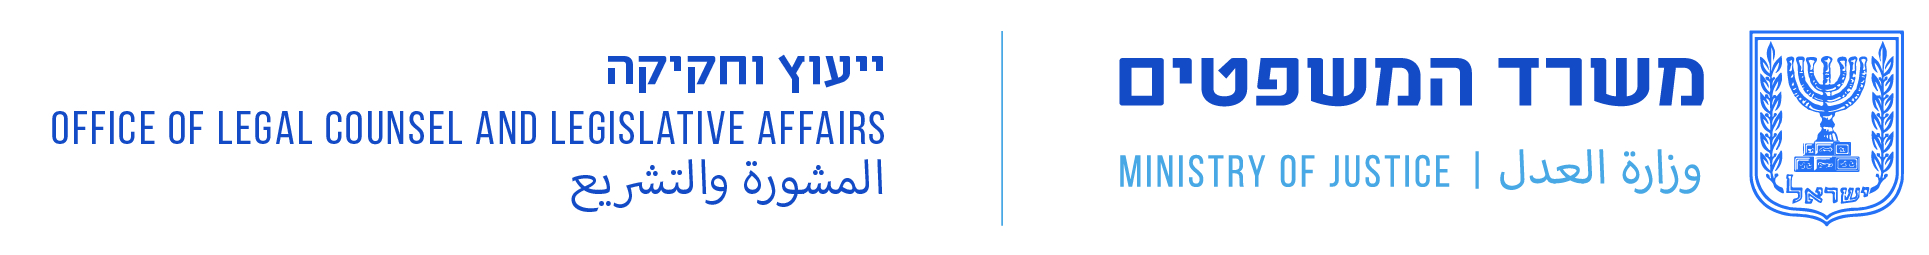 Logo of Israeli Ministry of Justice